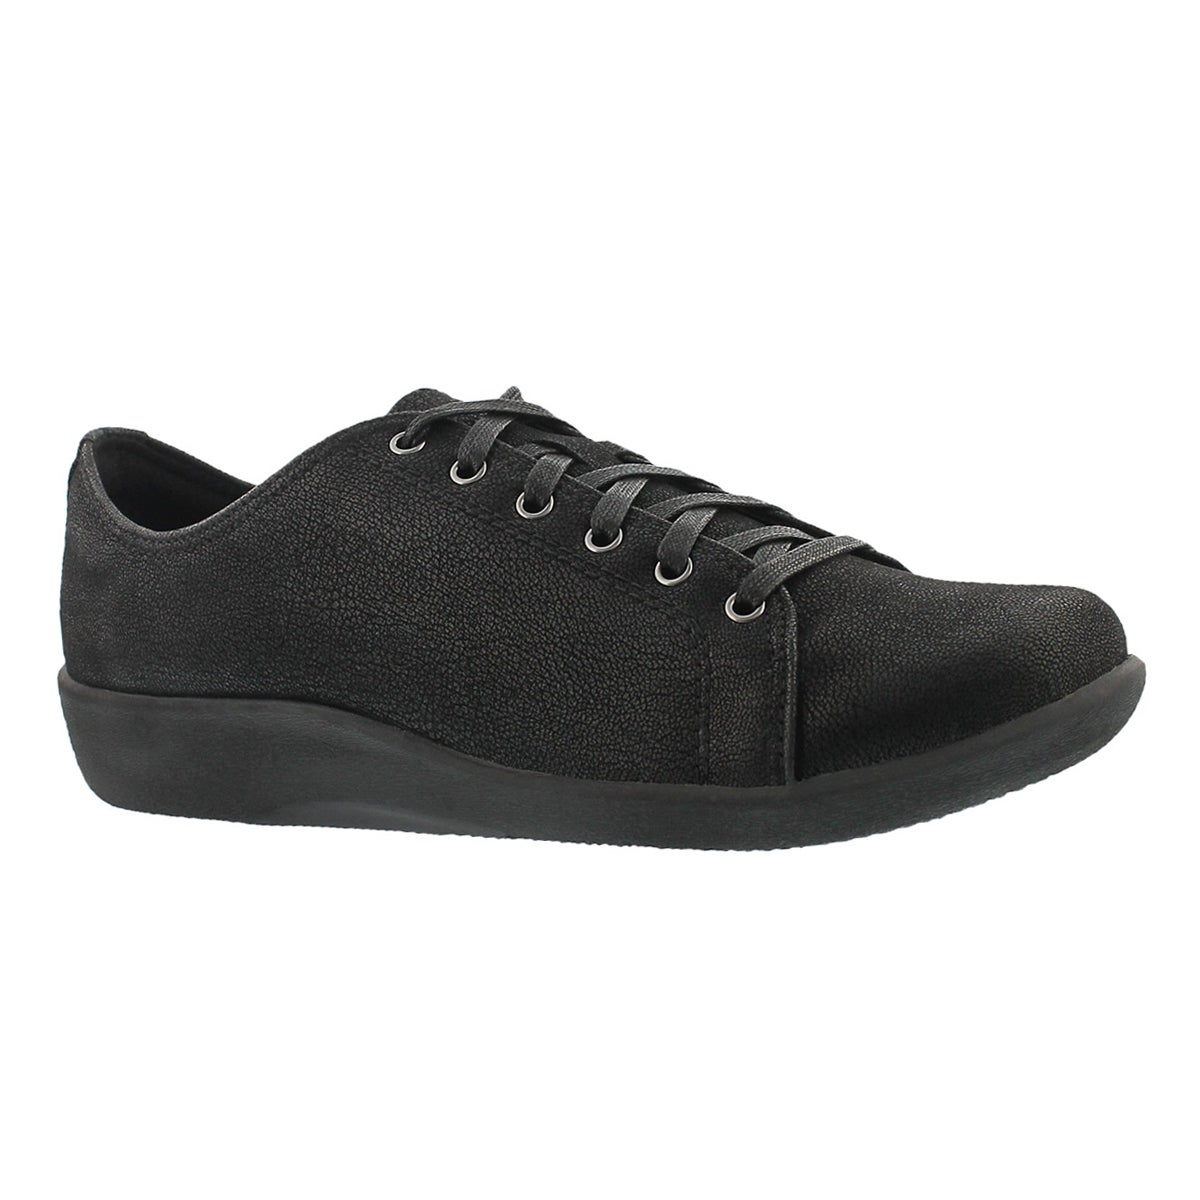 Lds Sillian Glory blk laceup casual shoe